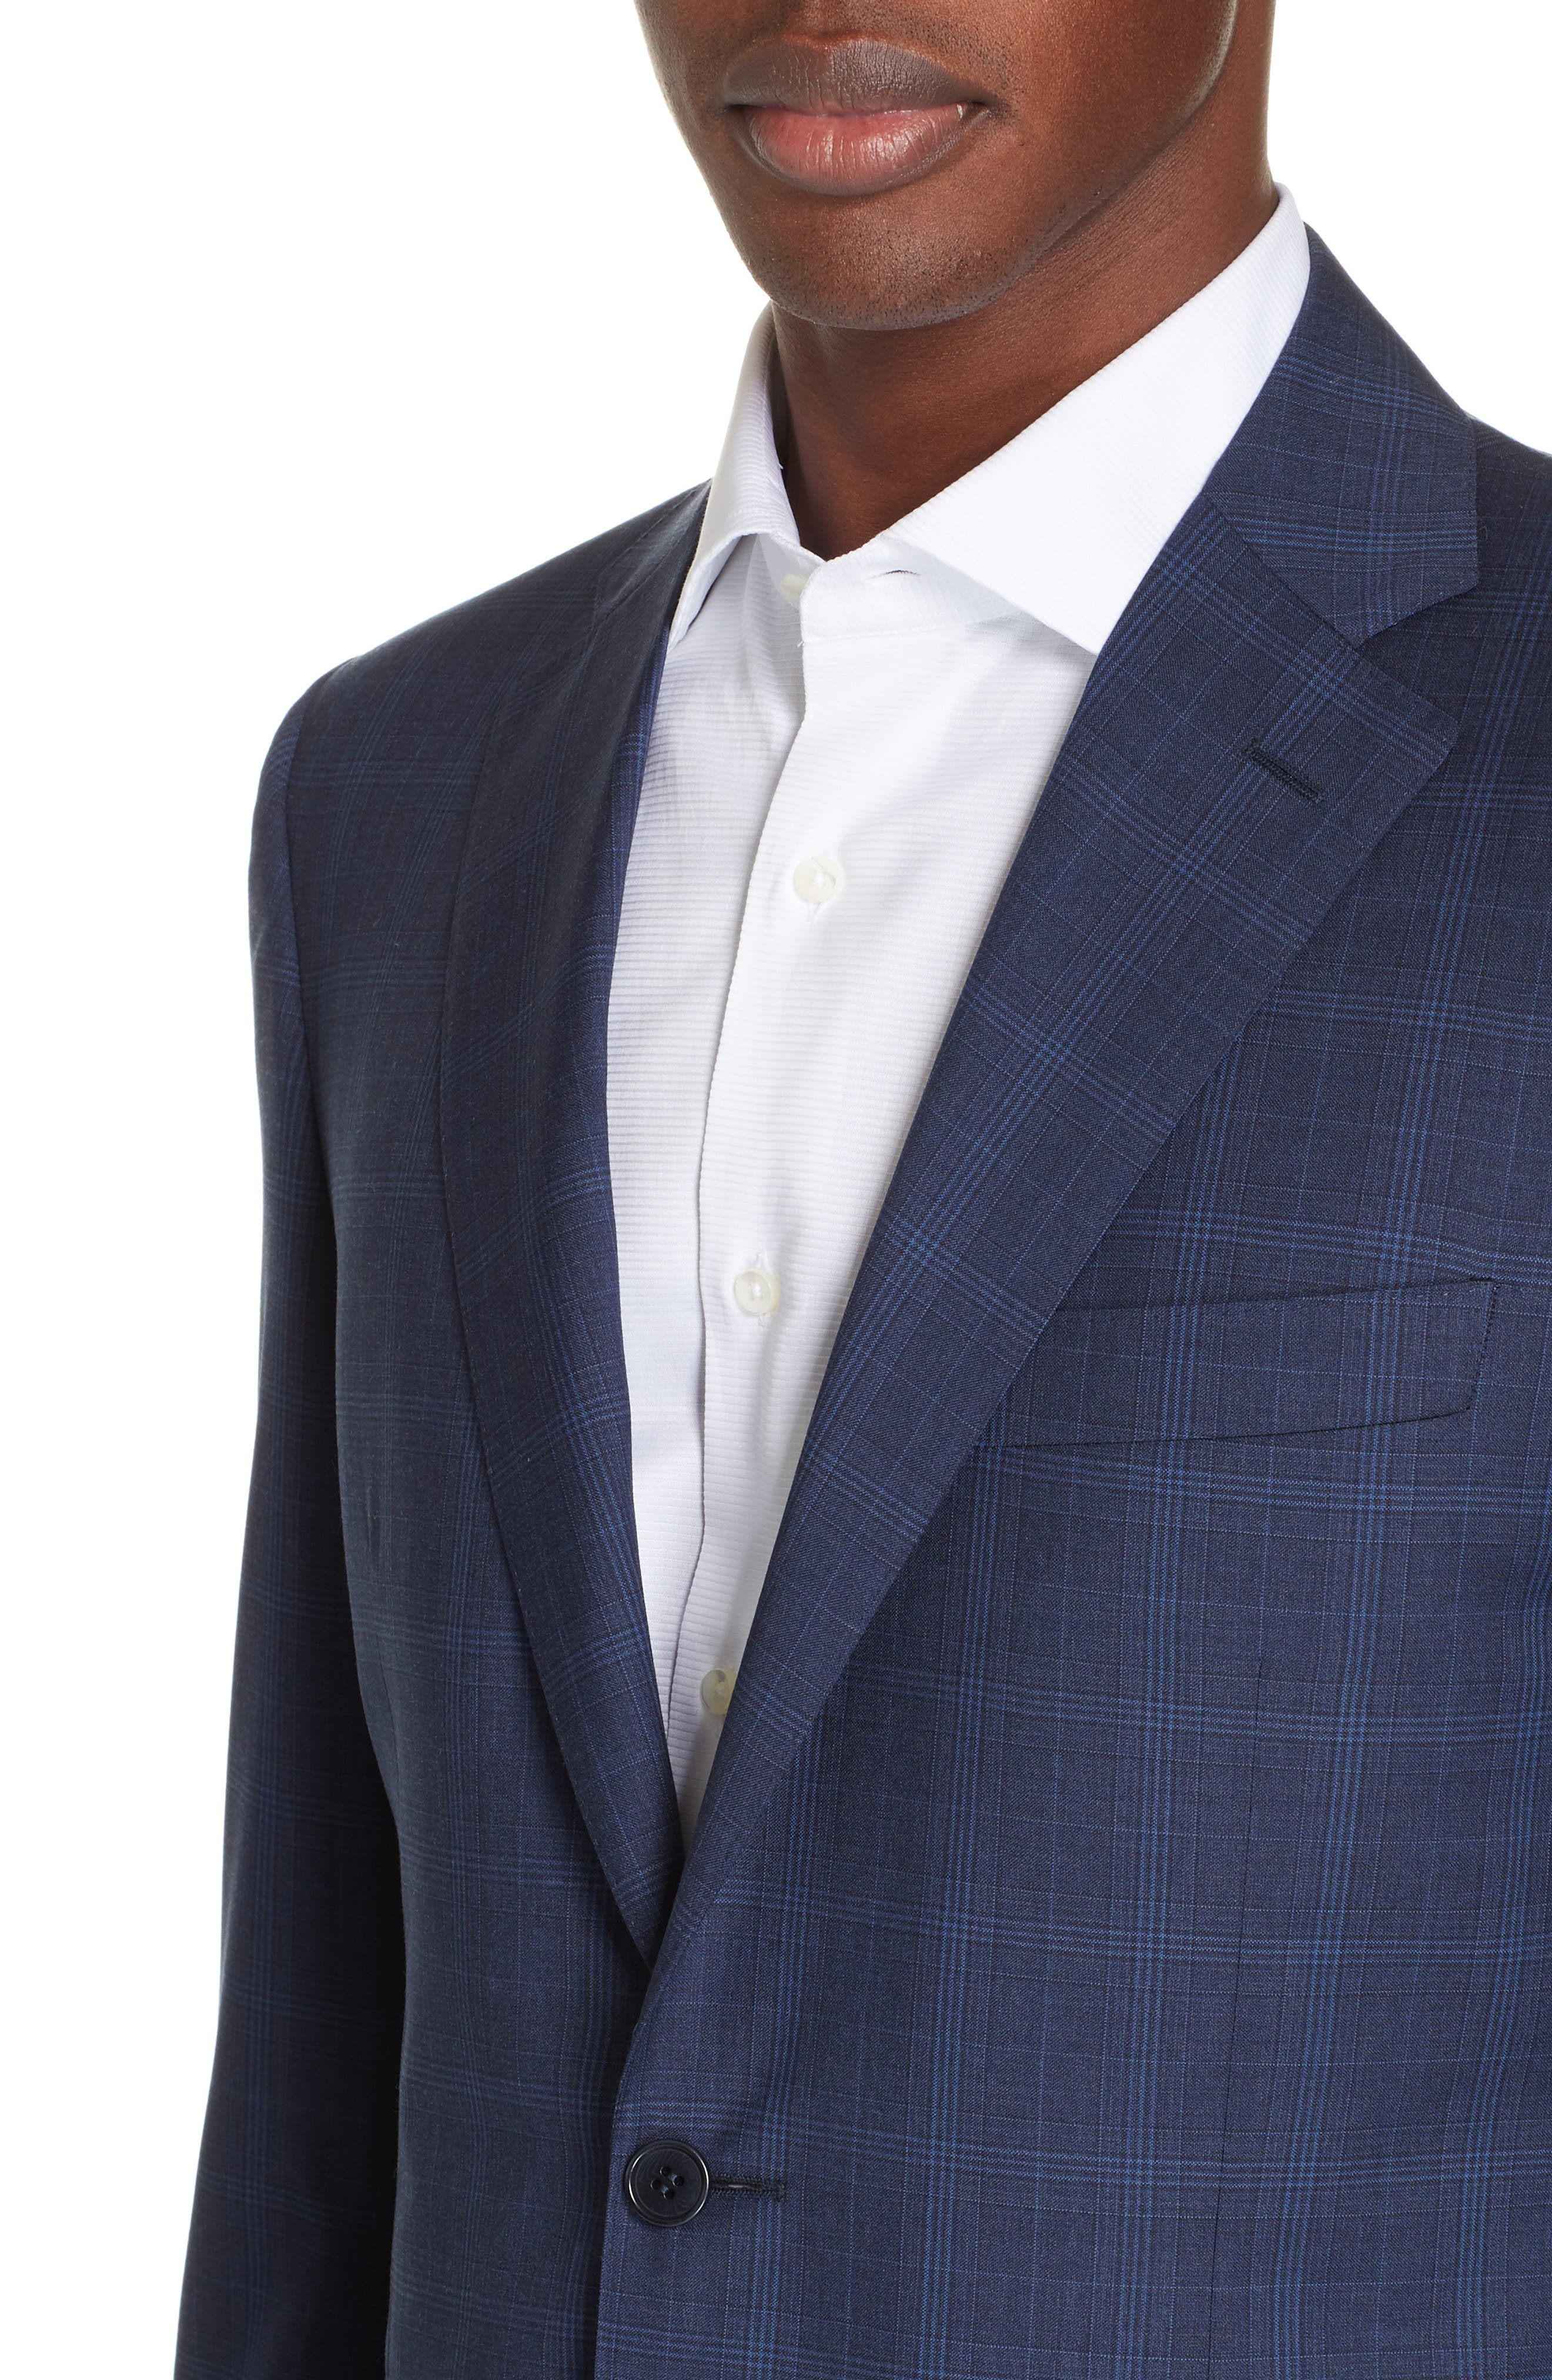 CANALI, Sienna Classic Fit Plaid Wool Suit, Alternate thumbnail 4, color, NAVY